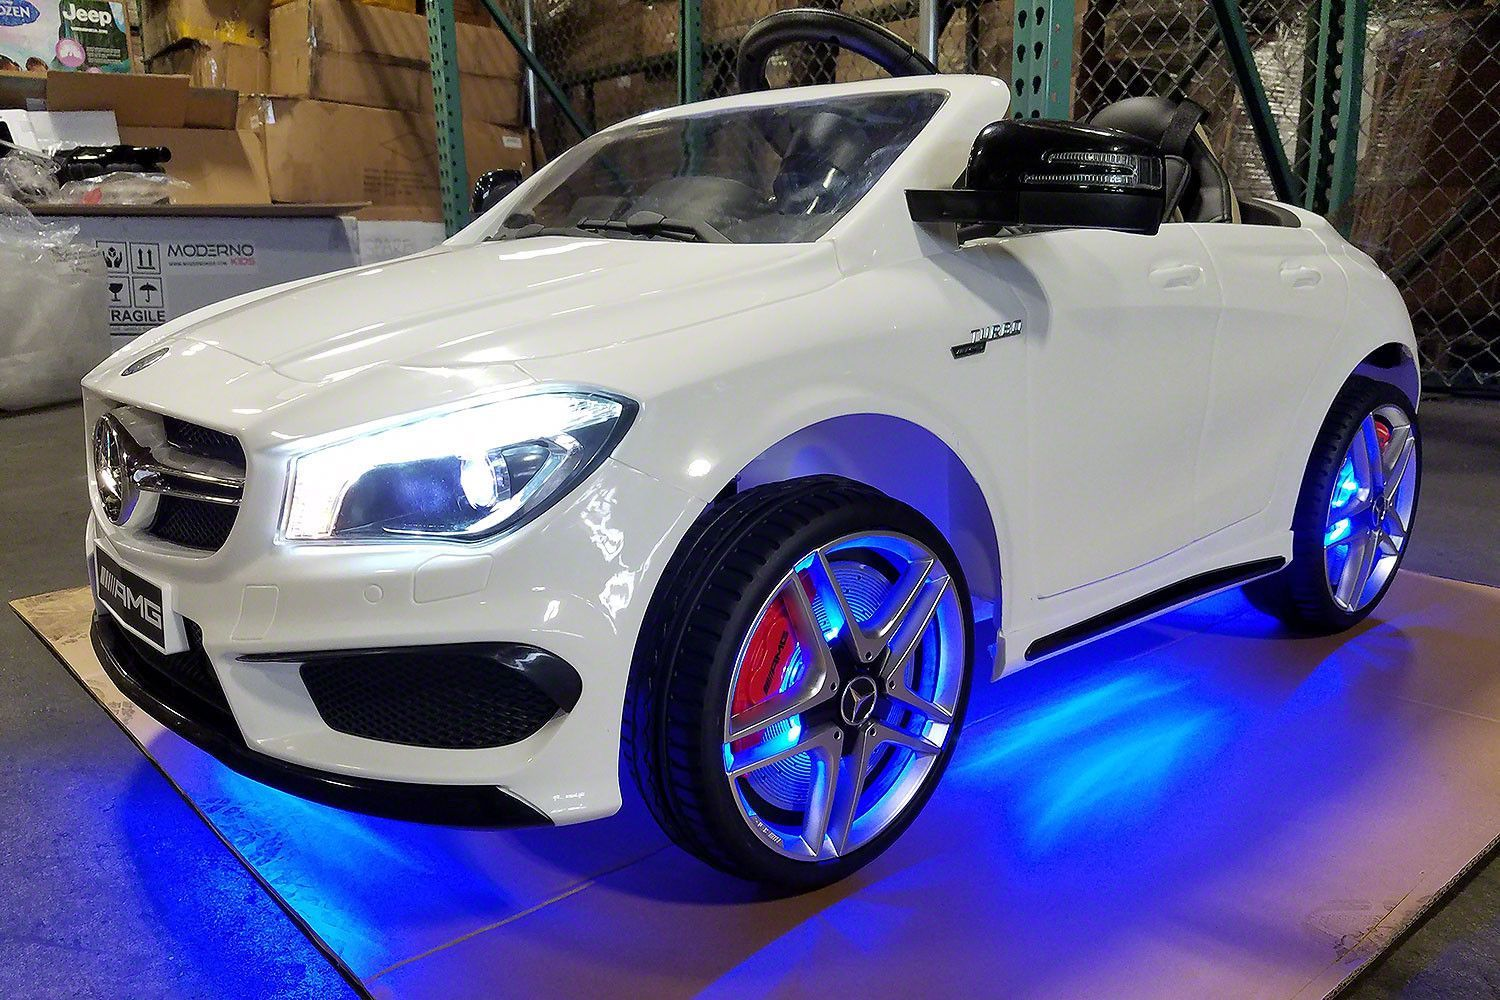 Mercedes benz cla45 kids ride on car toy mp3 usb 12v bat for Red mercedes benz power wheels